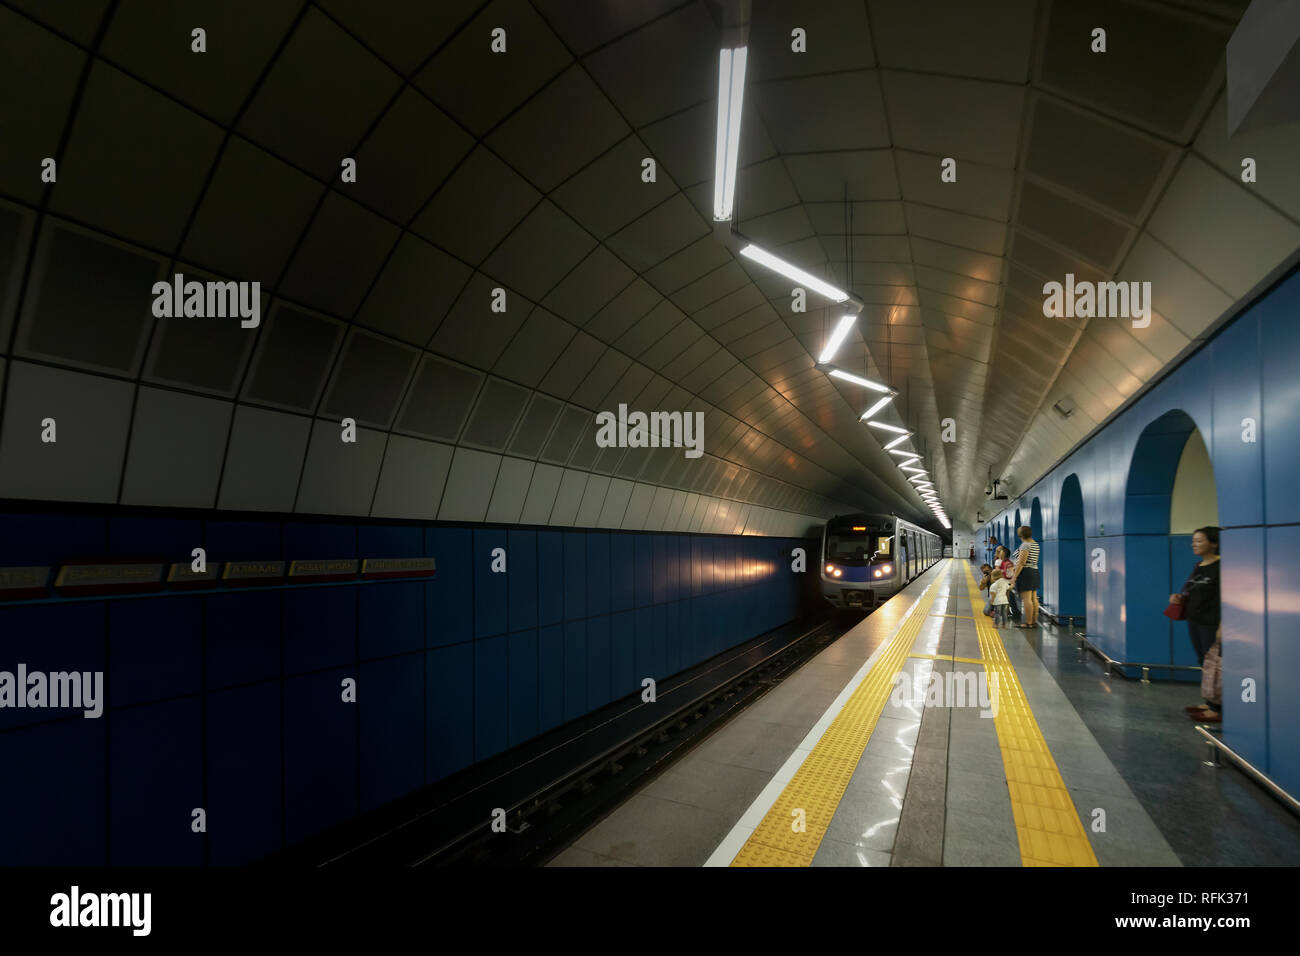 Train entering the subway station,, Baikonur Metro Station, Almaty, Kazakhstan - Stock Image